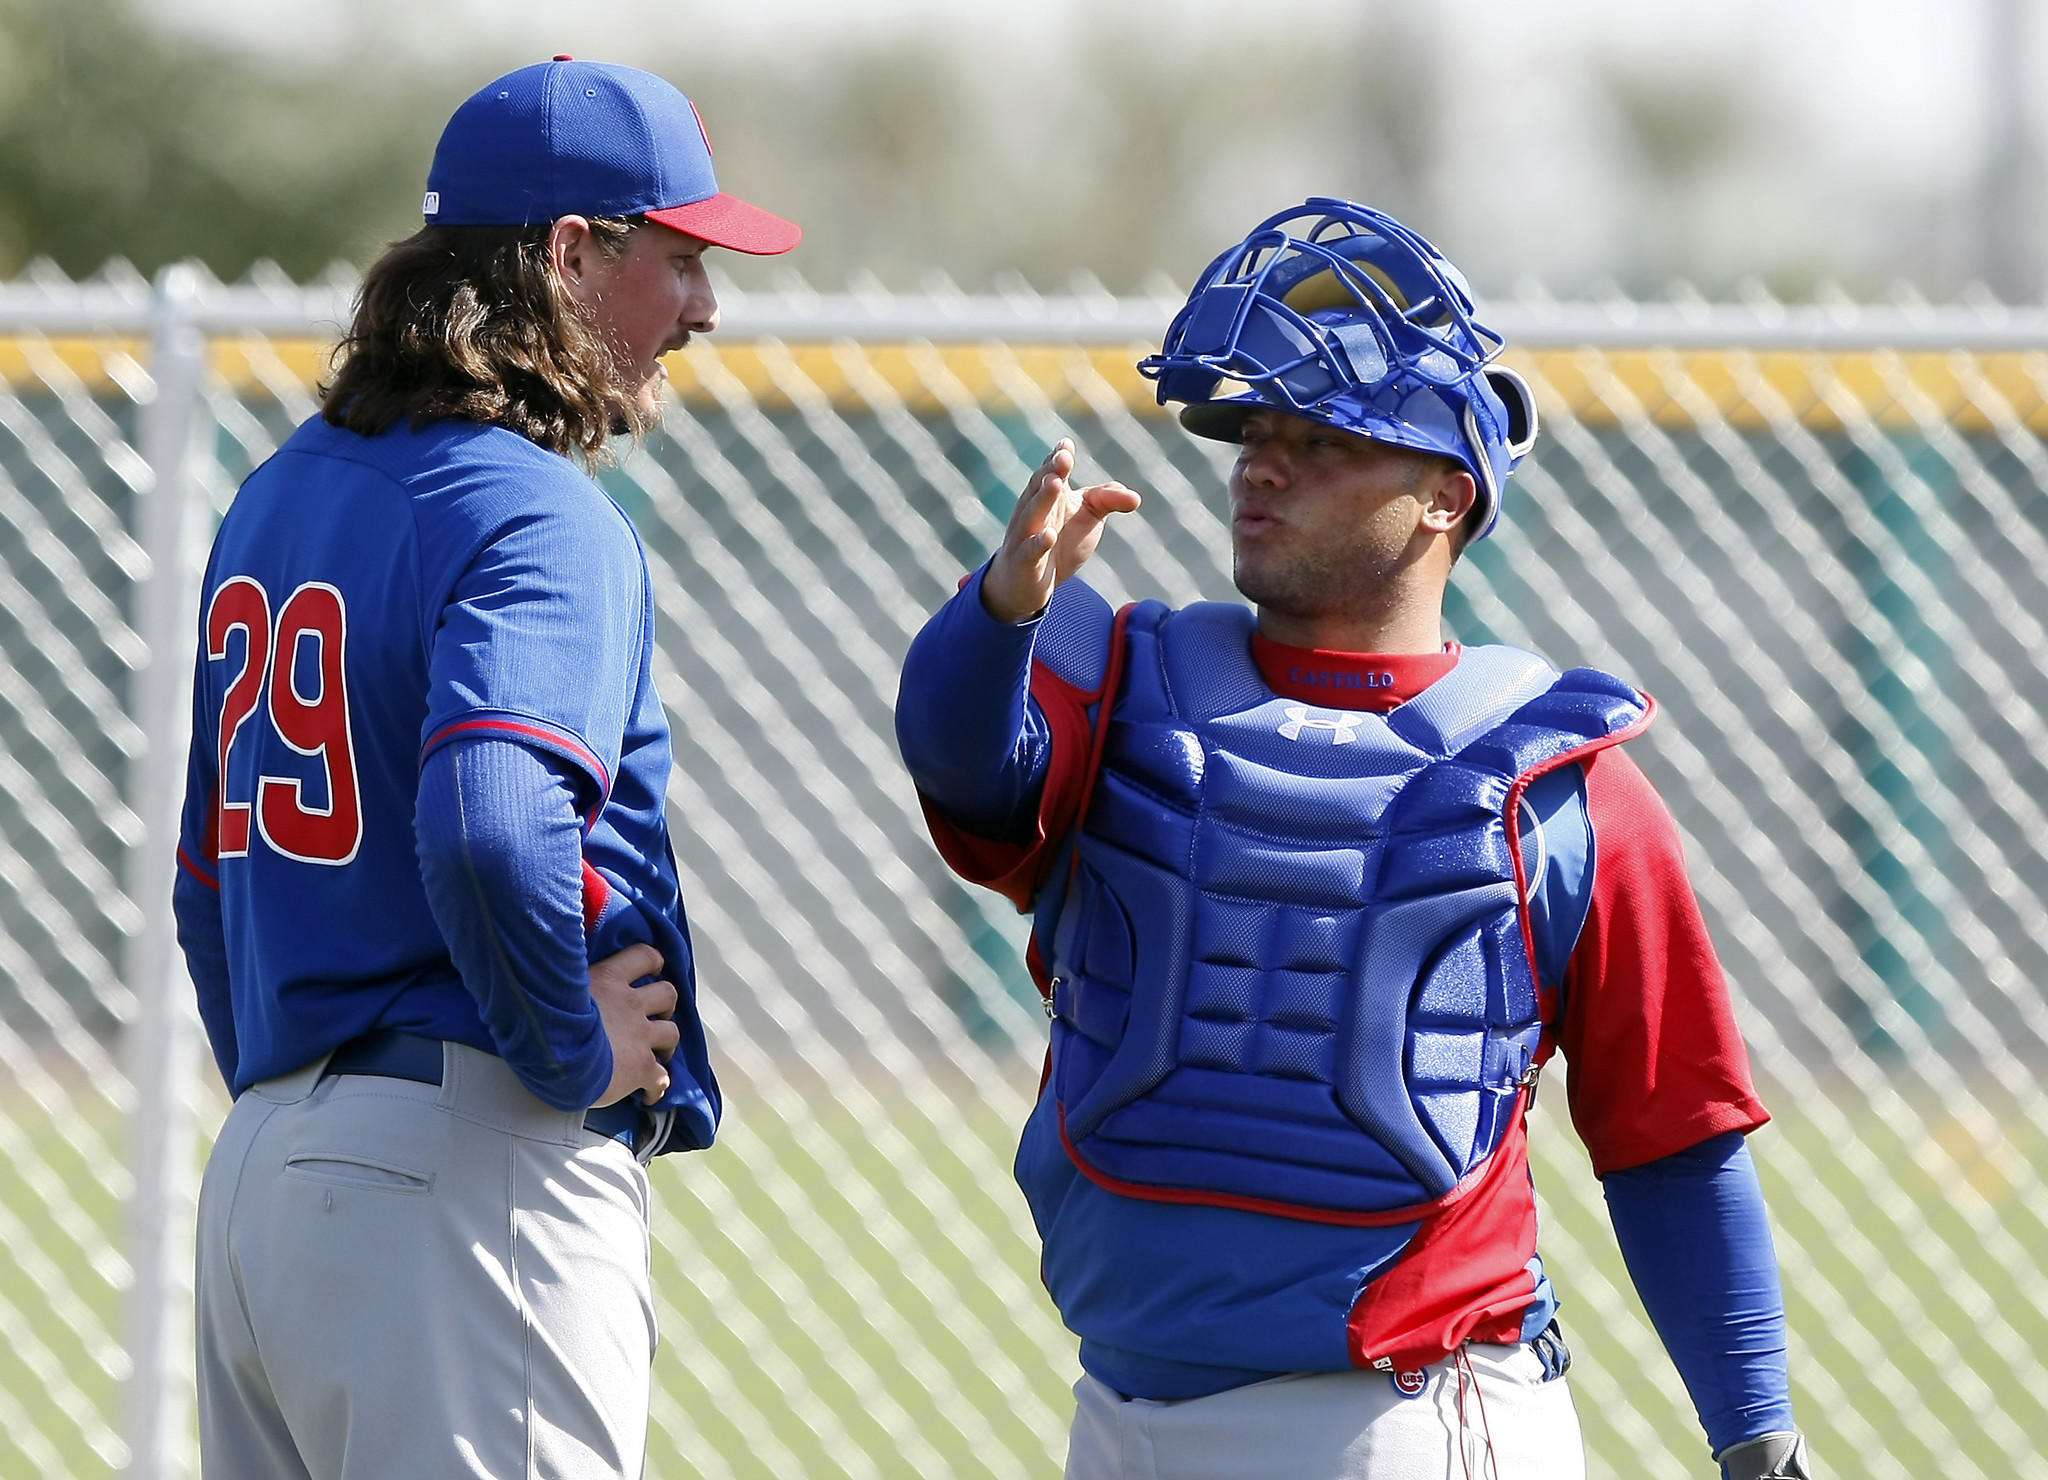 Chicago Cubs starting pitcher Jeff Samardzija (29) talks with catcher Welington Castillo (5) in the bullpen during camp at Chicago Cubs training facility at Mesa.